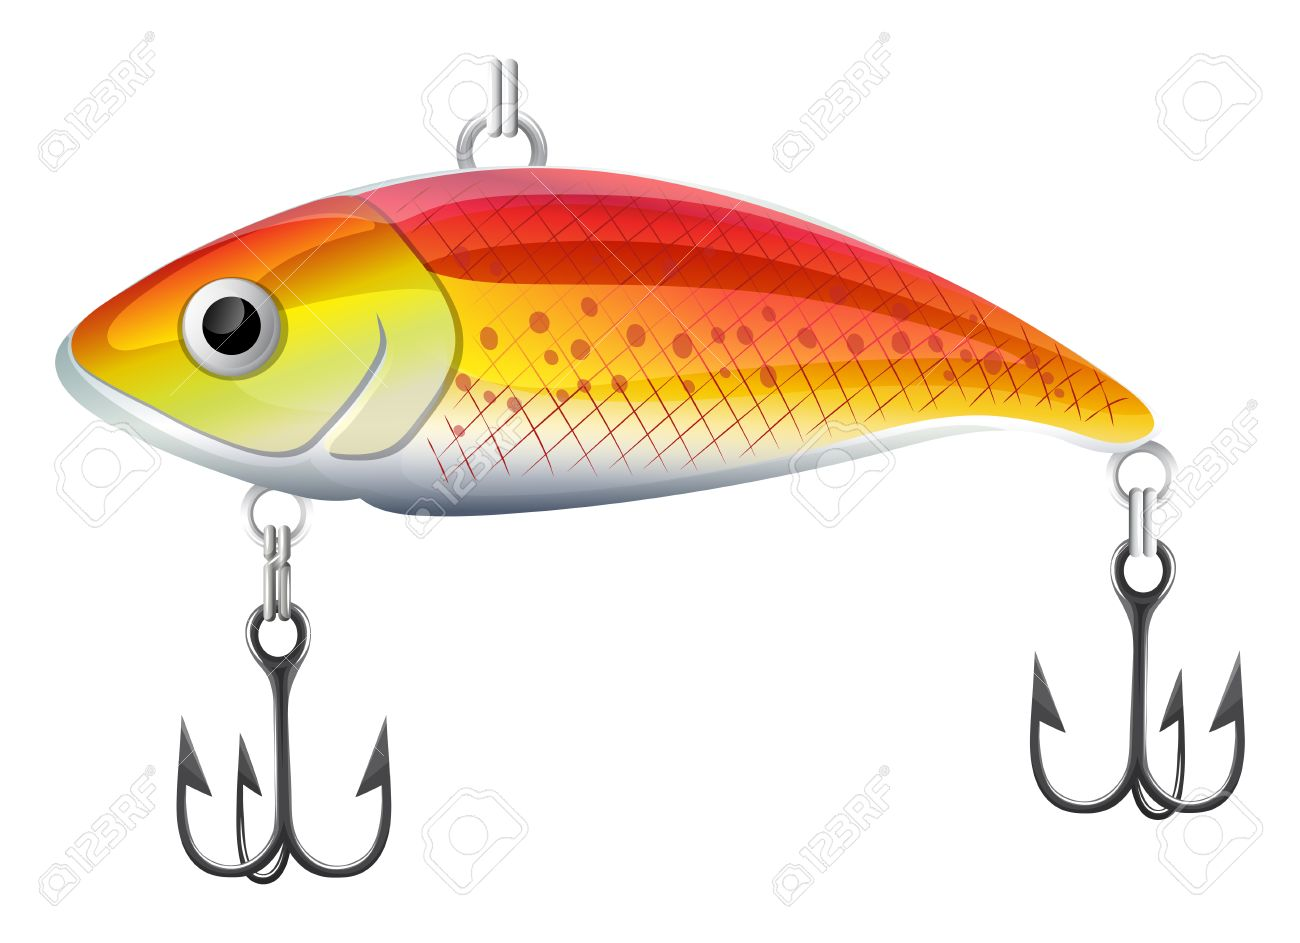 Plastic orange fishing lure with hooks.